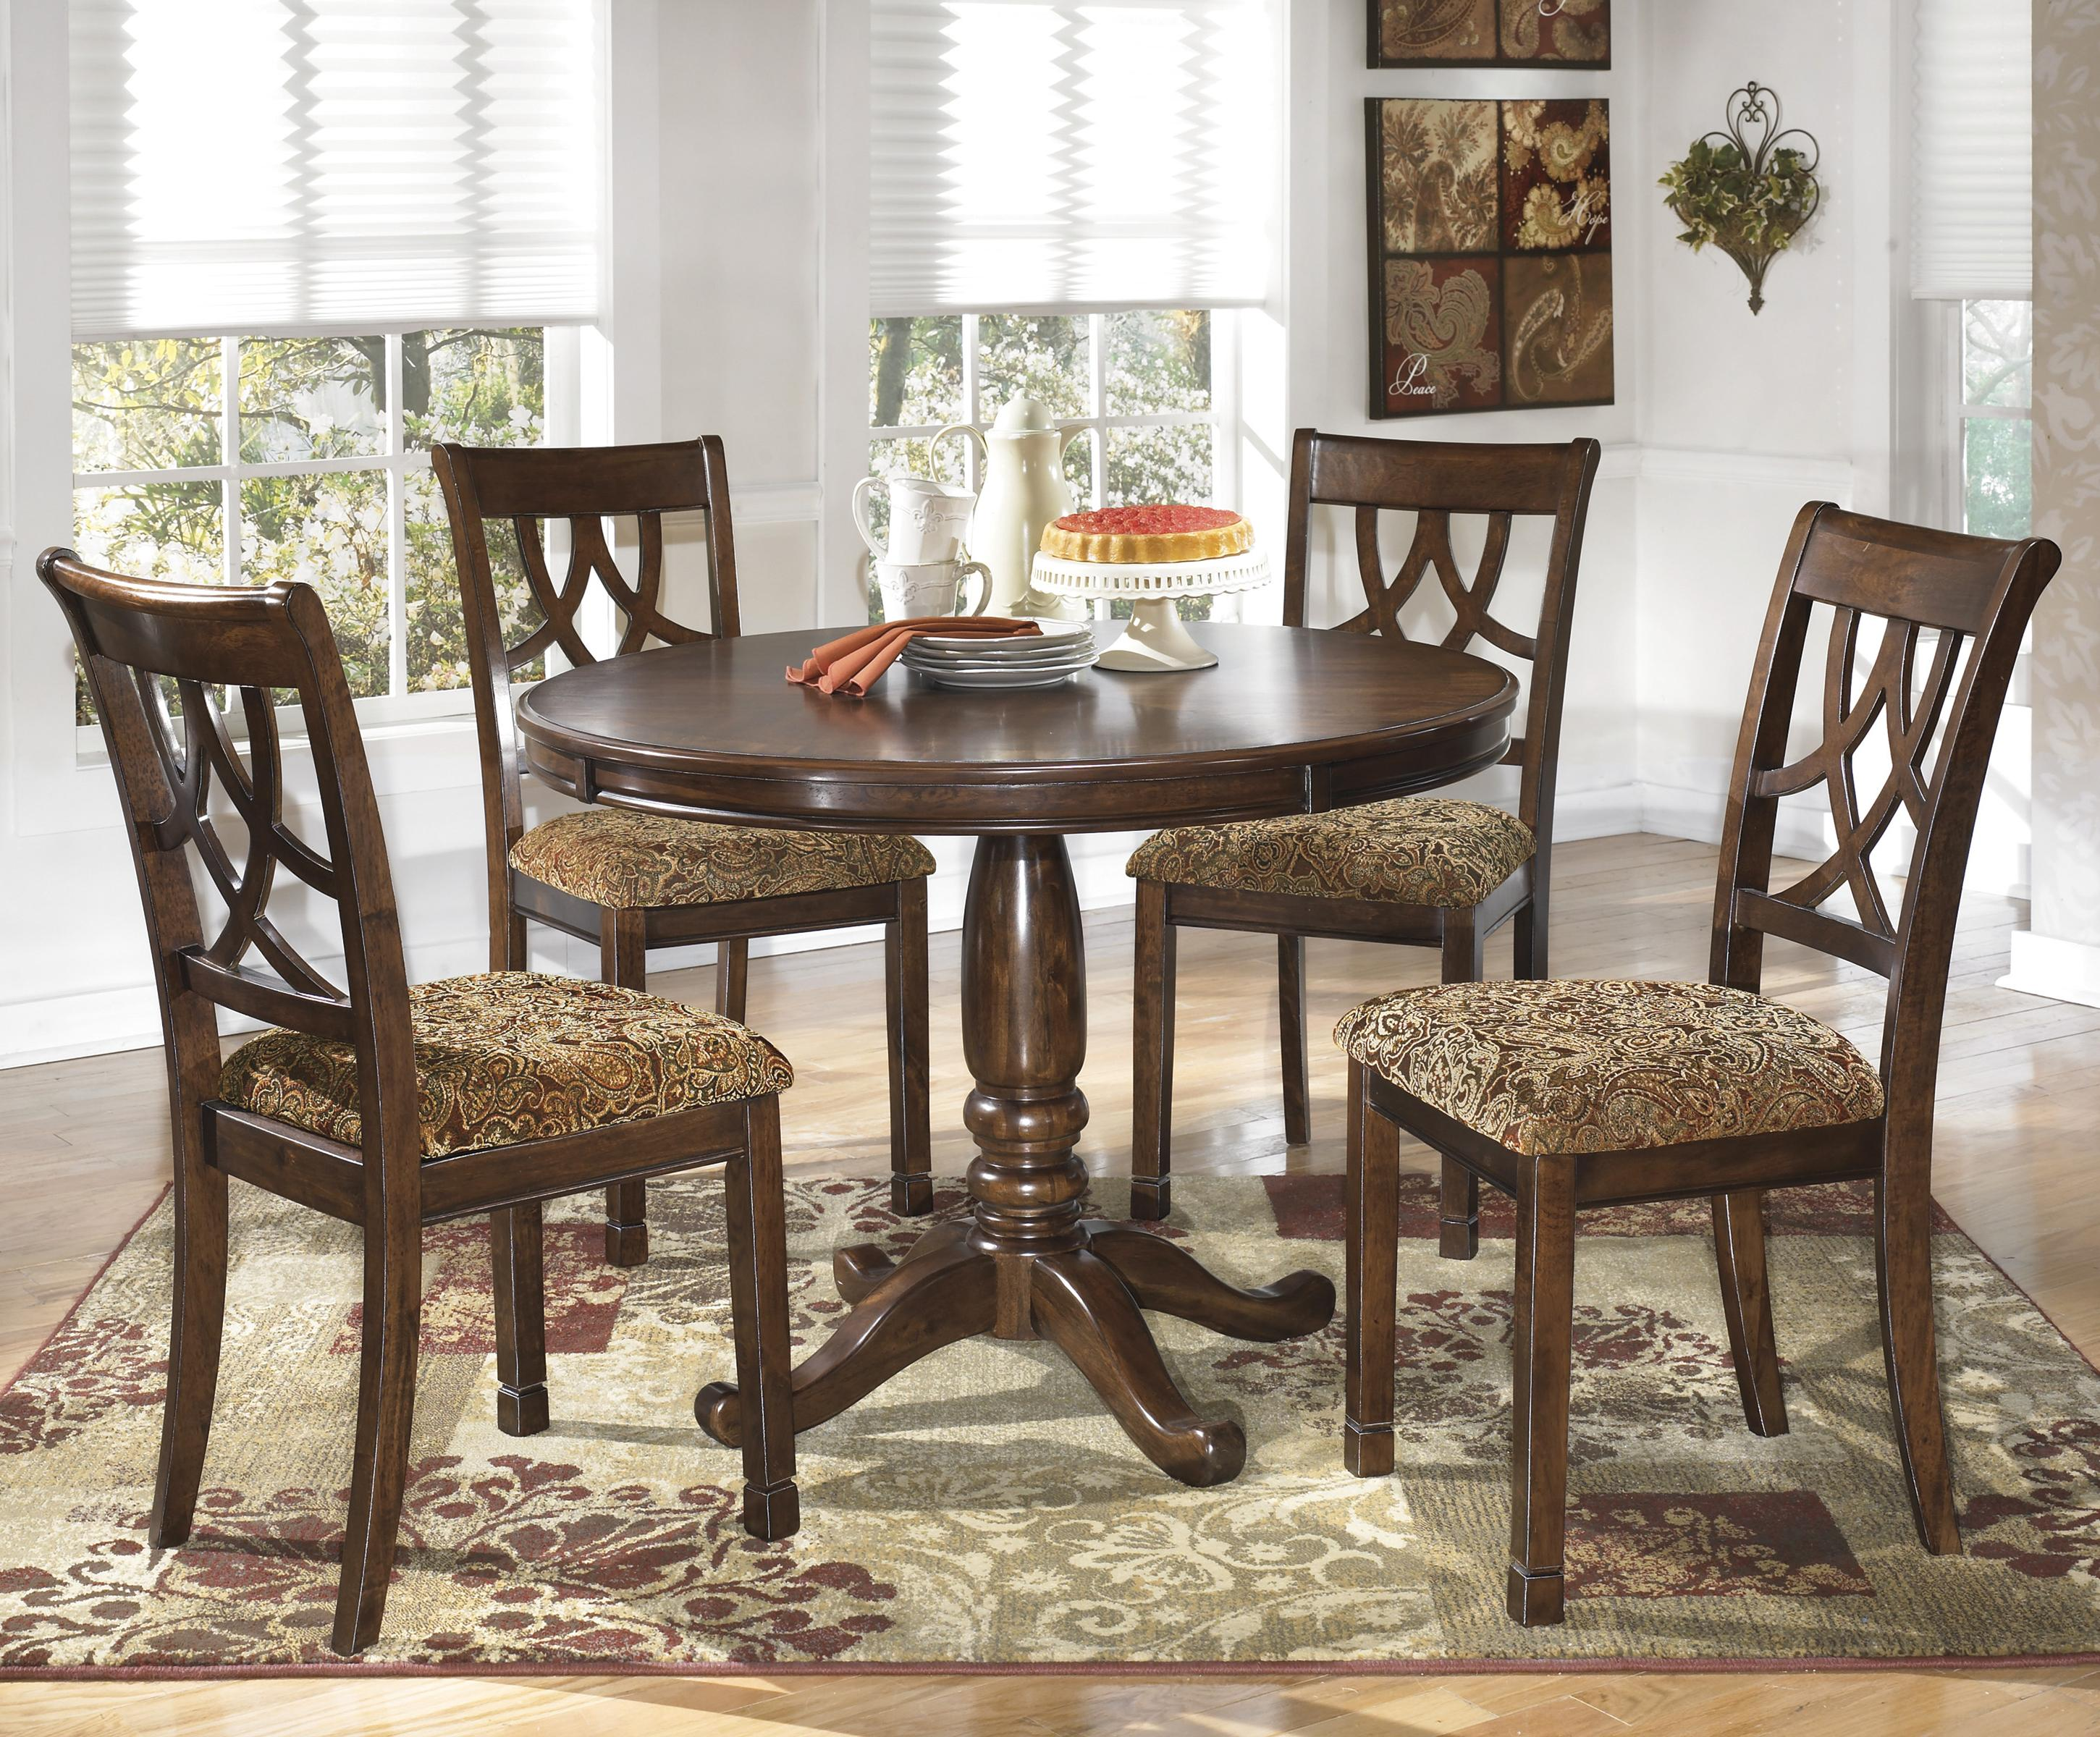 round table and chairs set eskimo fishing chair lila 5 piece cherry finish dining rotmans